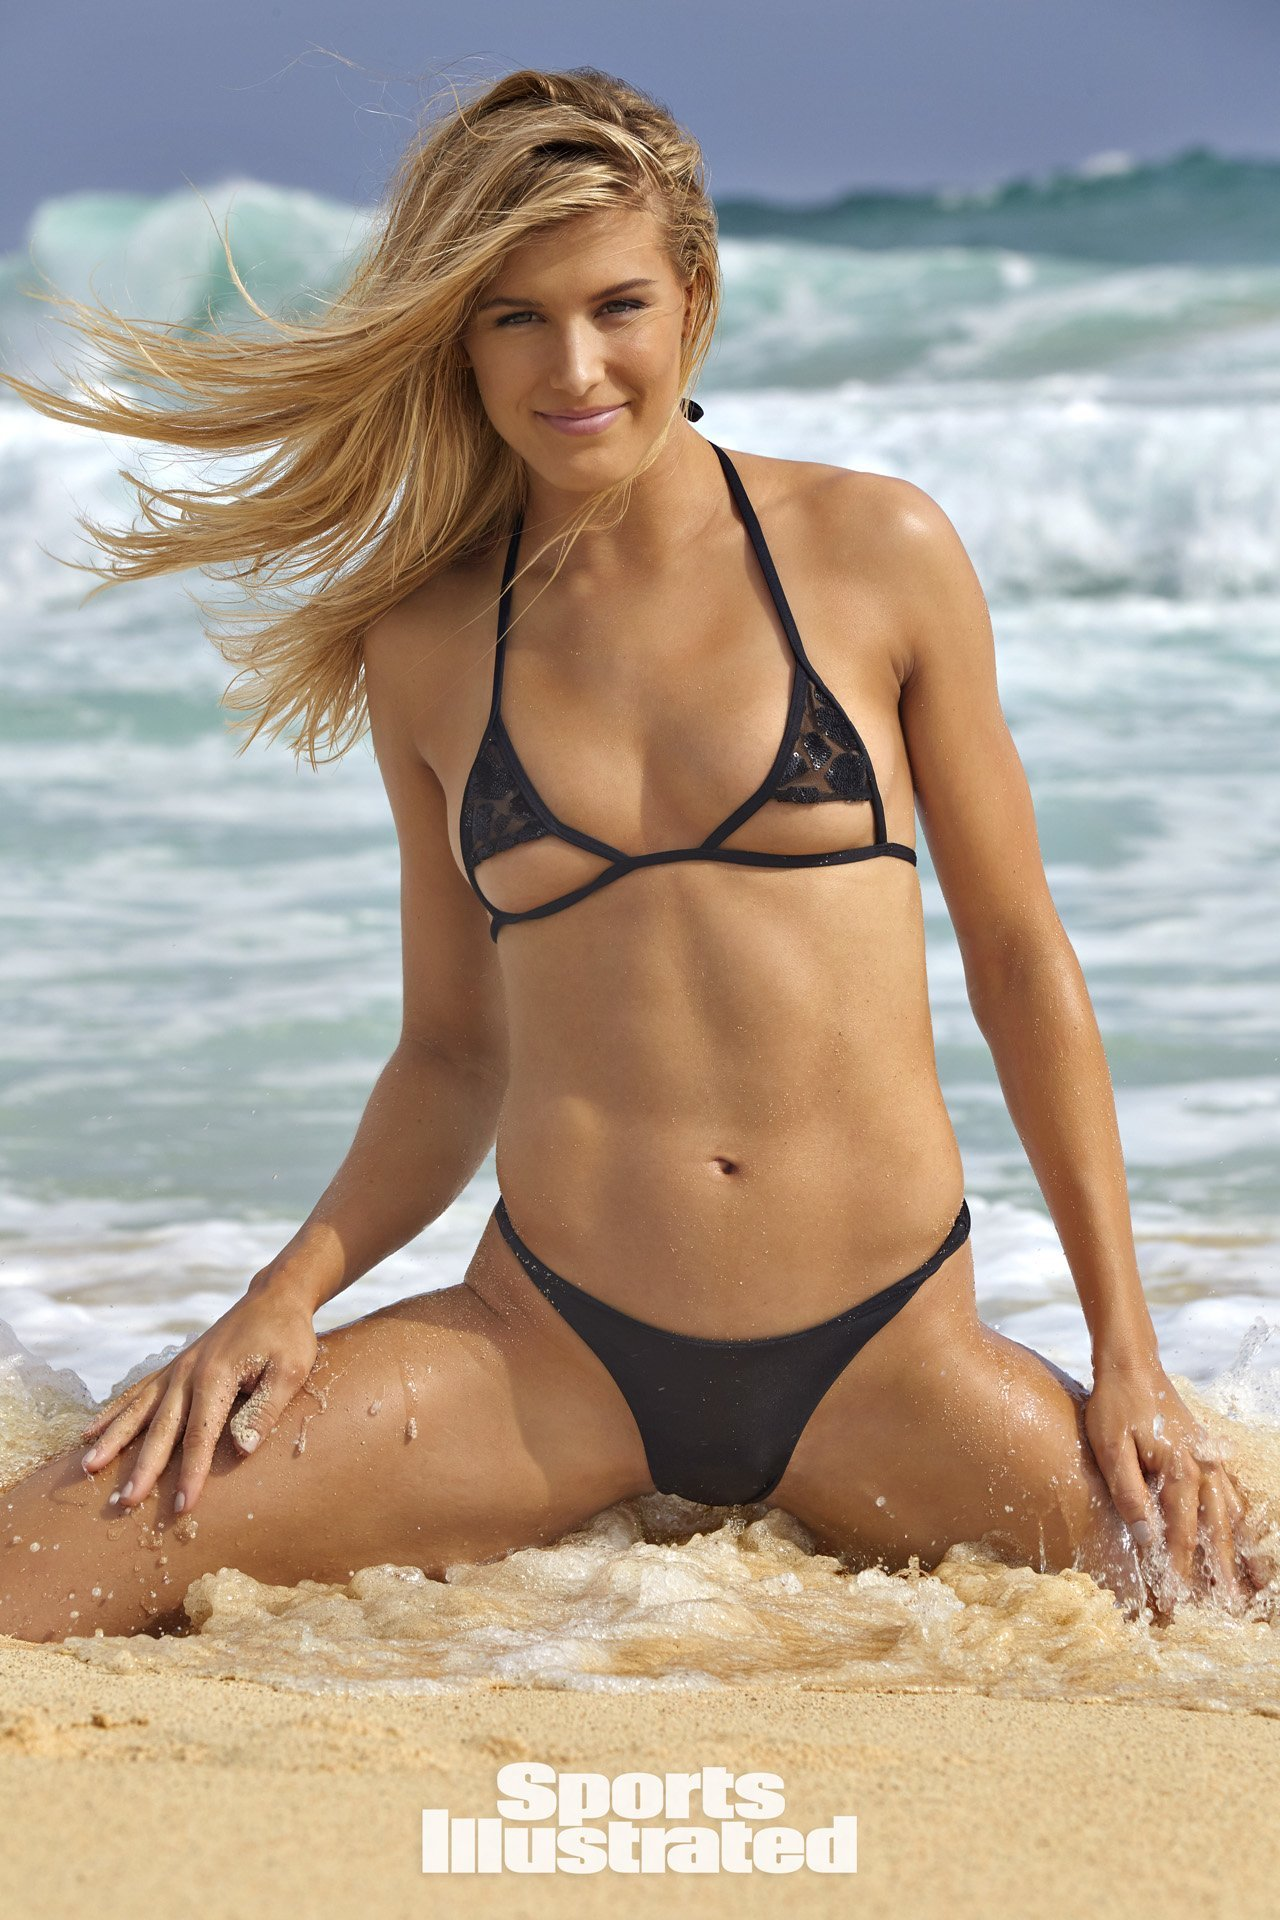 Sports illustrated bikini eddington from